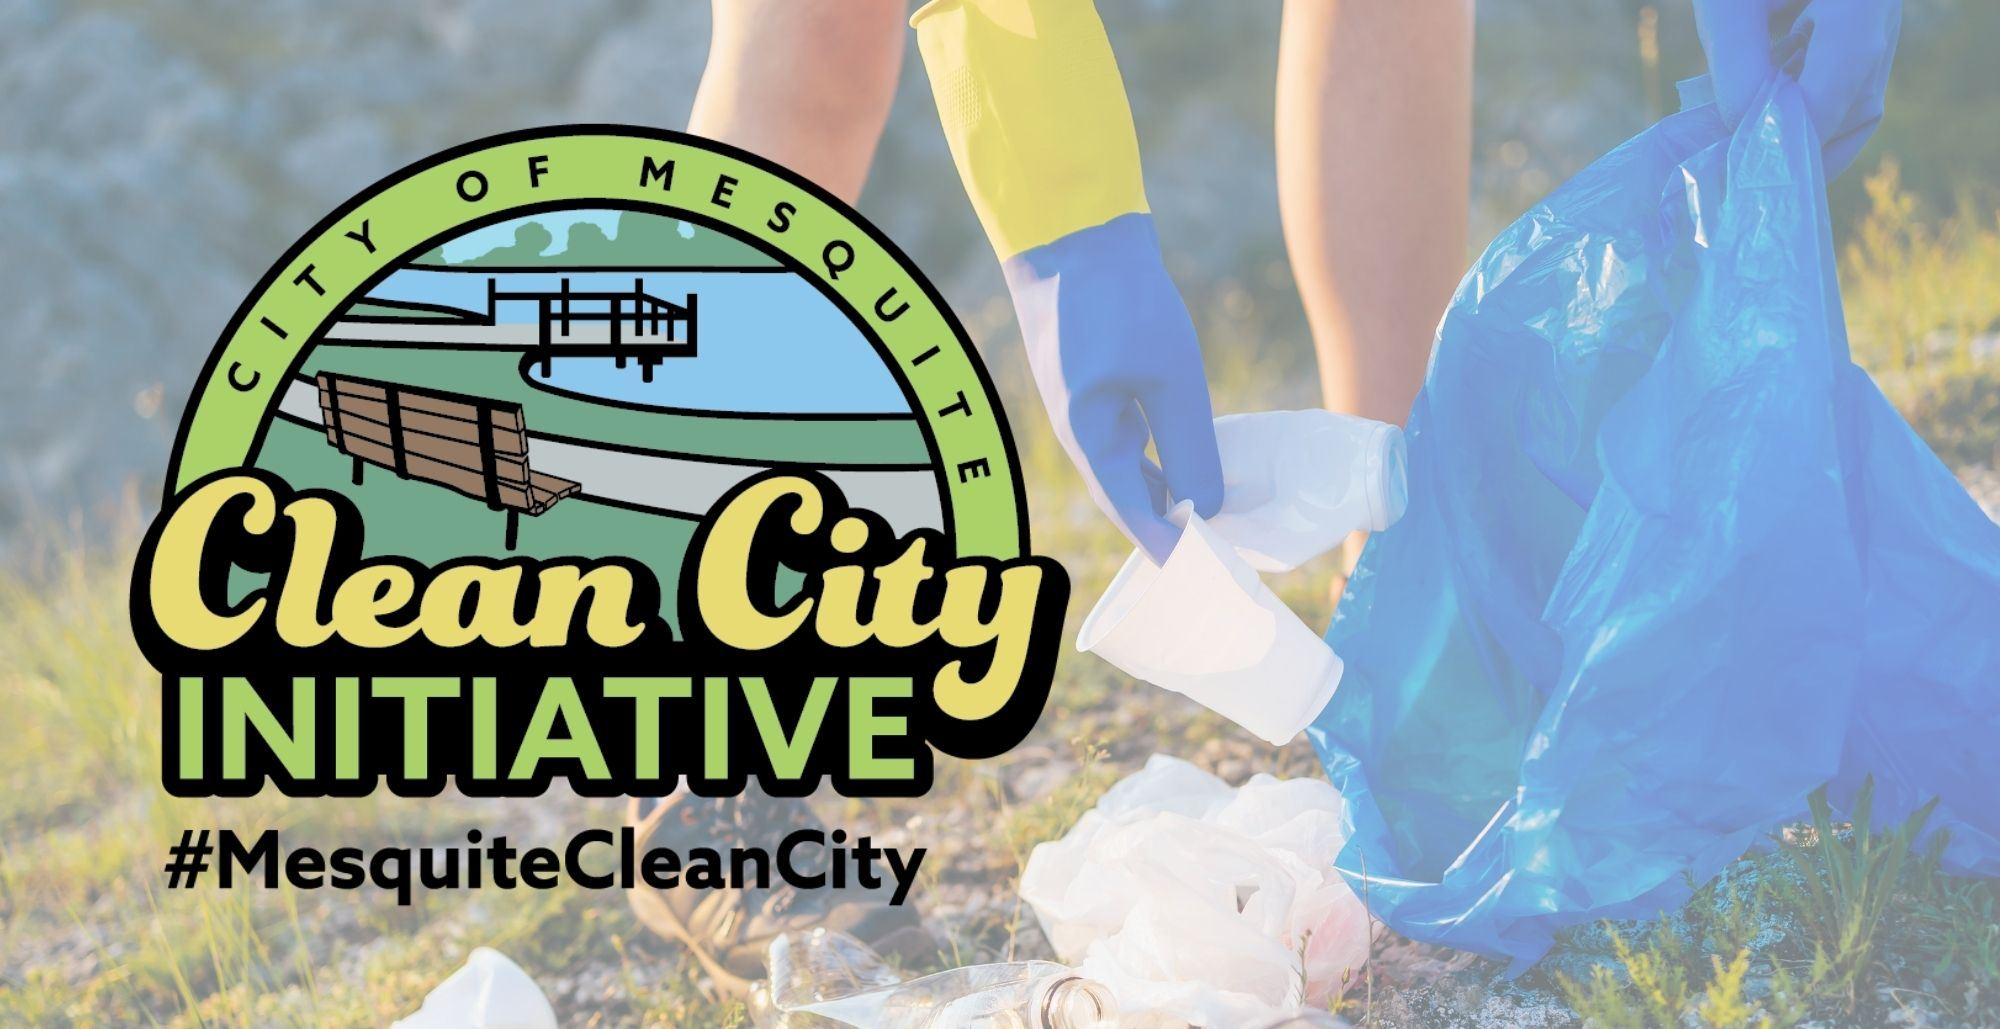 Clean City Webslide